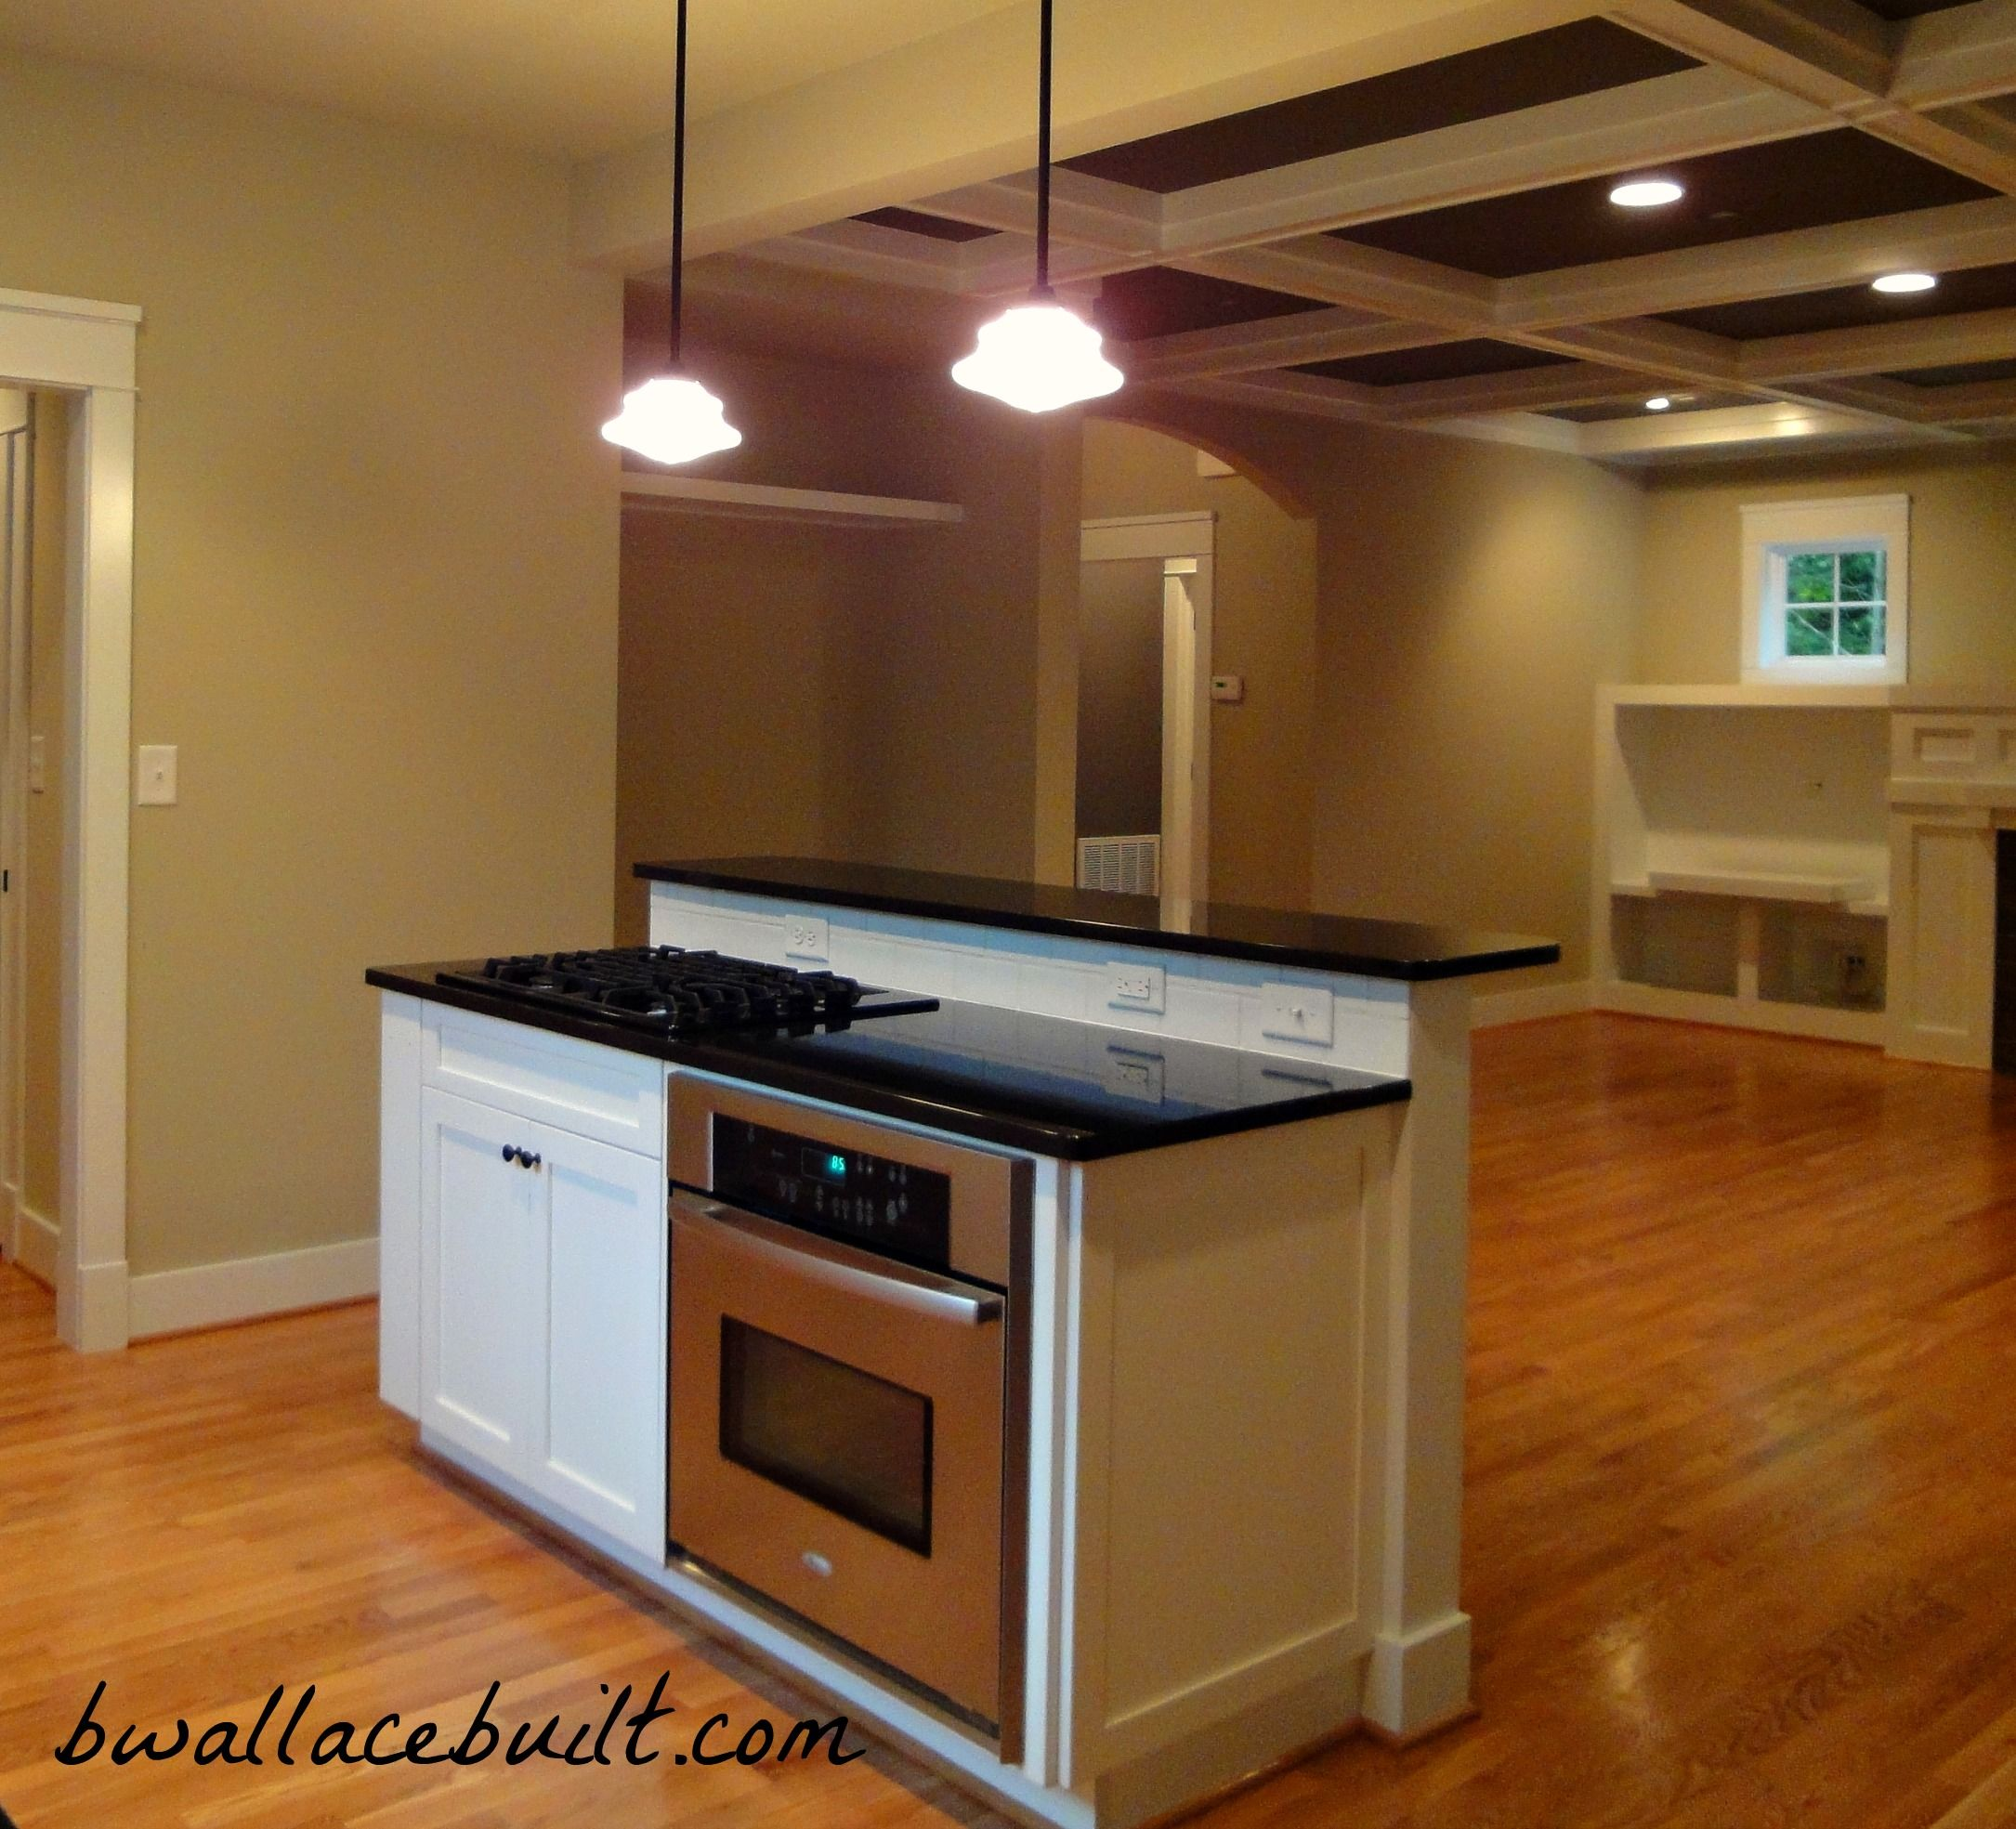 Small Kitchen With Island Stove Kitchen Island With Separate Stove Top From Oven Perfect